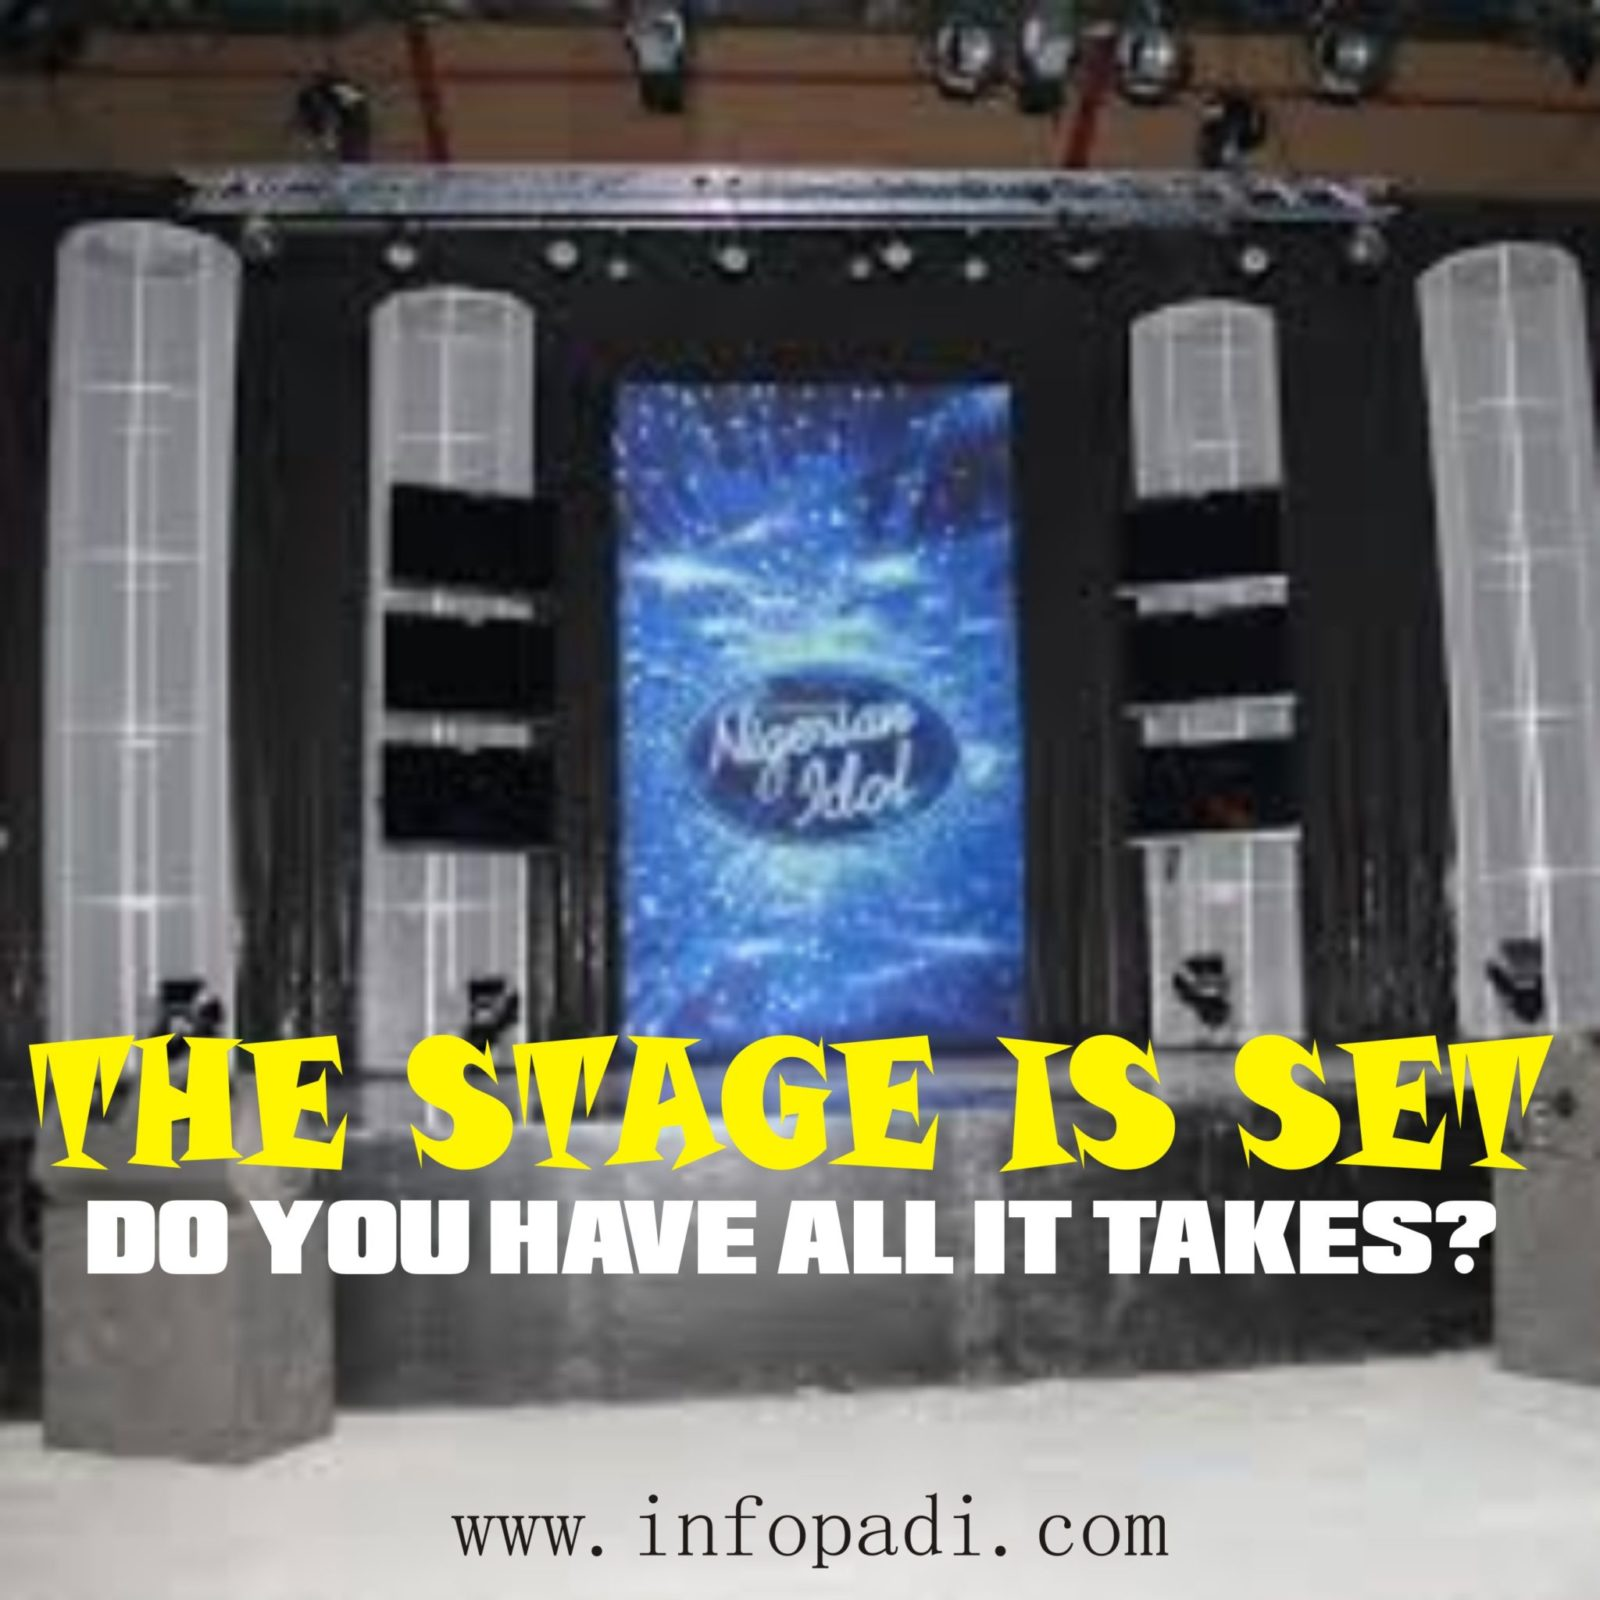 NIGERIAN IDOL- Proper steps to register for the 2019 Nigerian Idols- Become a super star